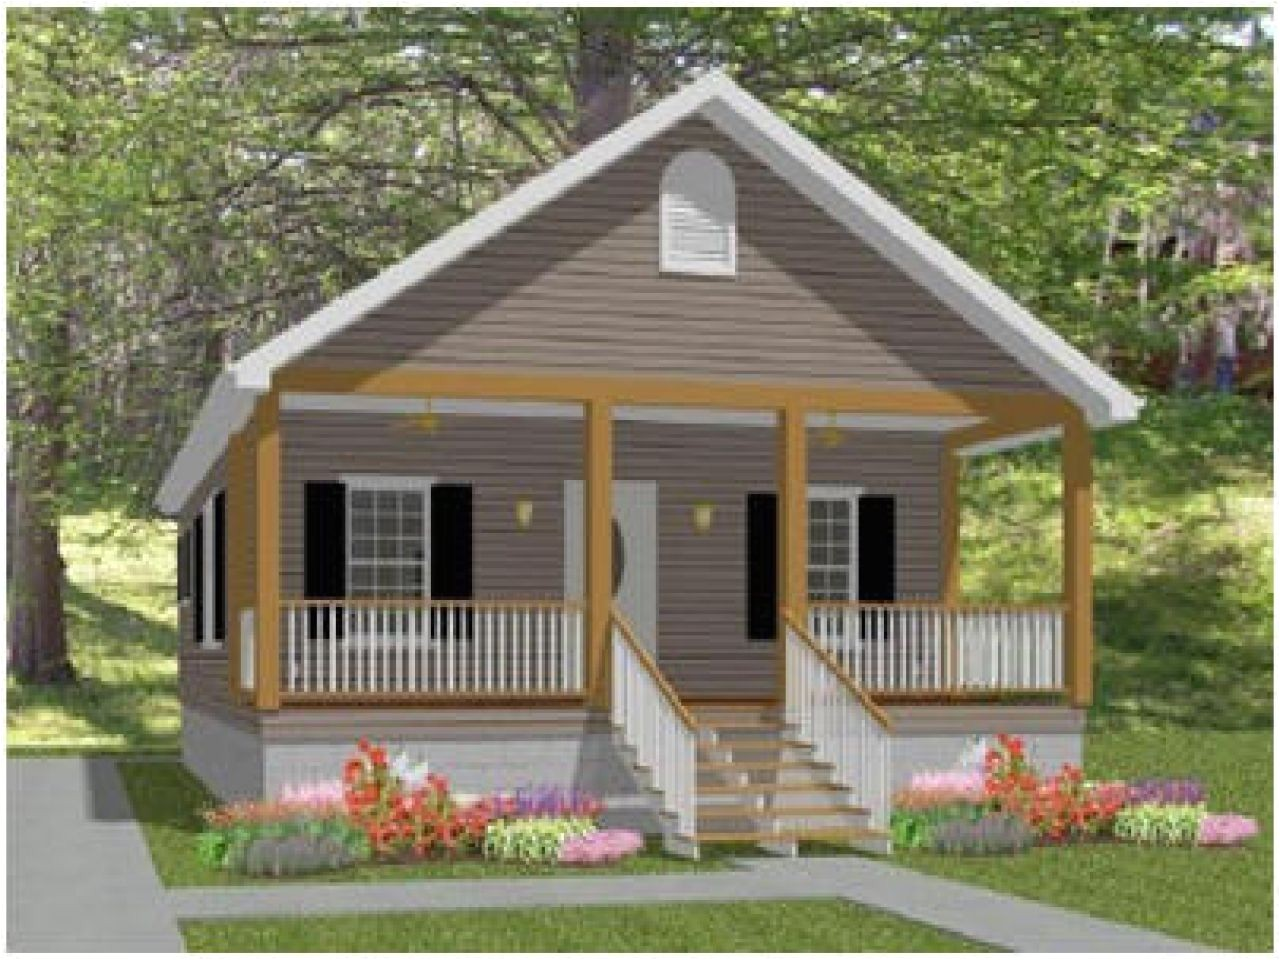 Small Cottage Home Plans Small Cottage House Plans with Porches 2018 House Plans